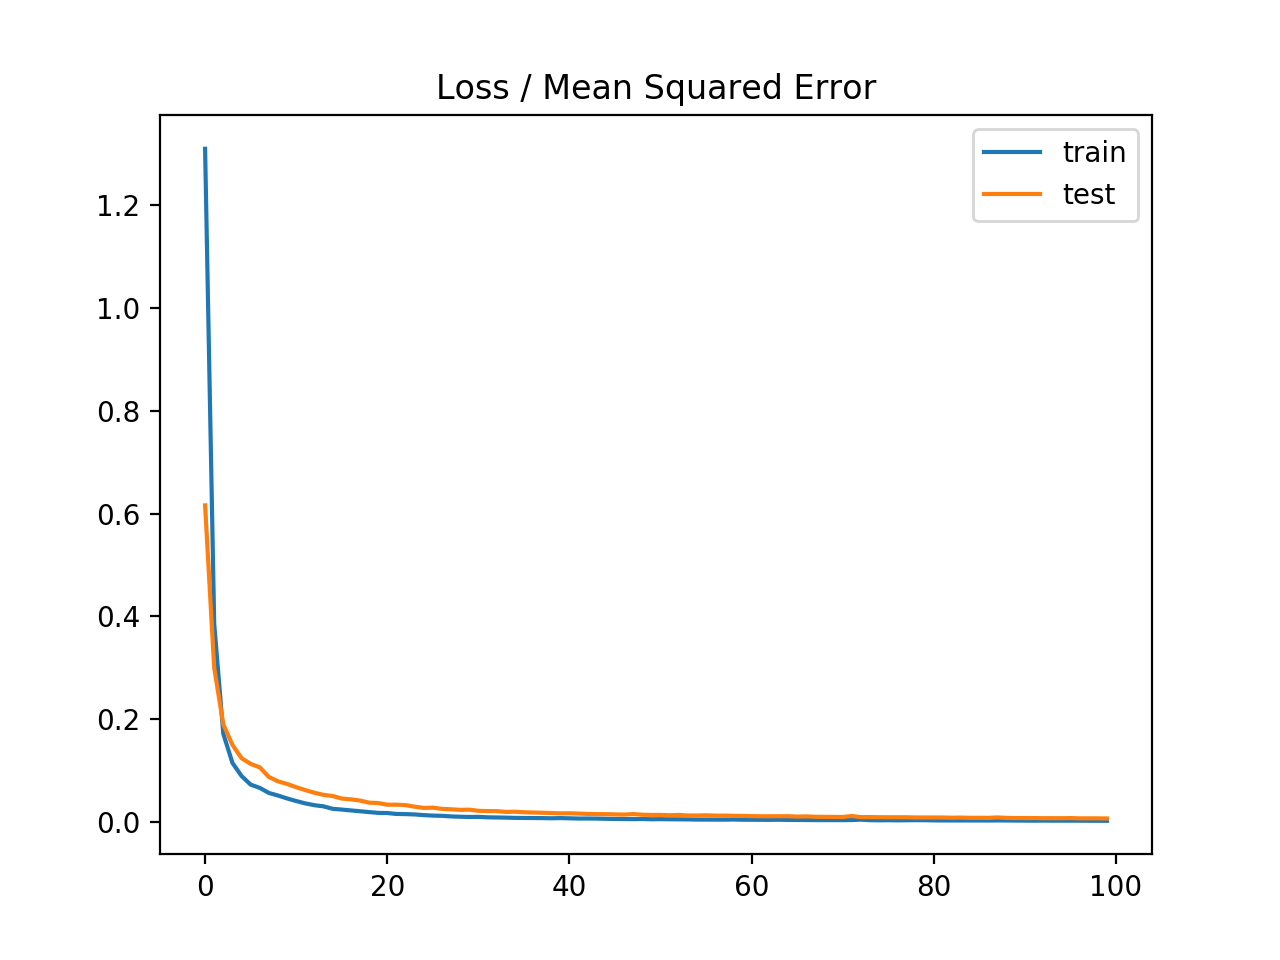 Line Plot of Mean Squared Error on the Train a Test Datasets for Each Training Epoch